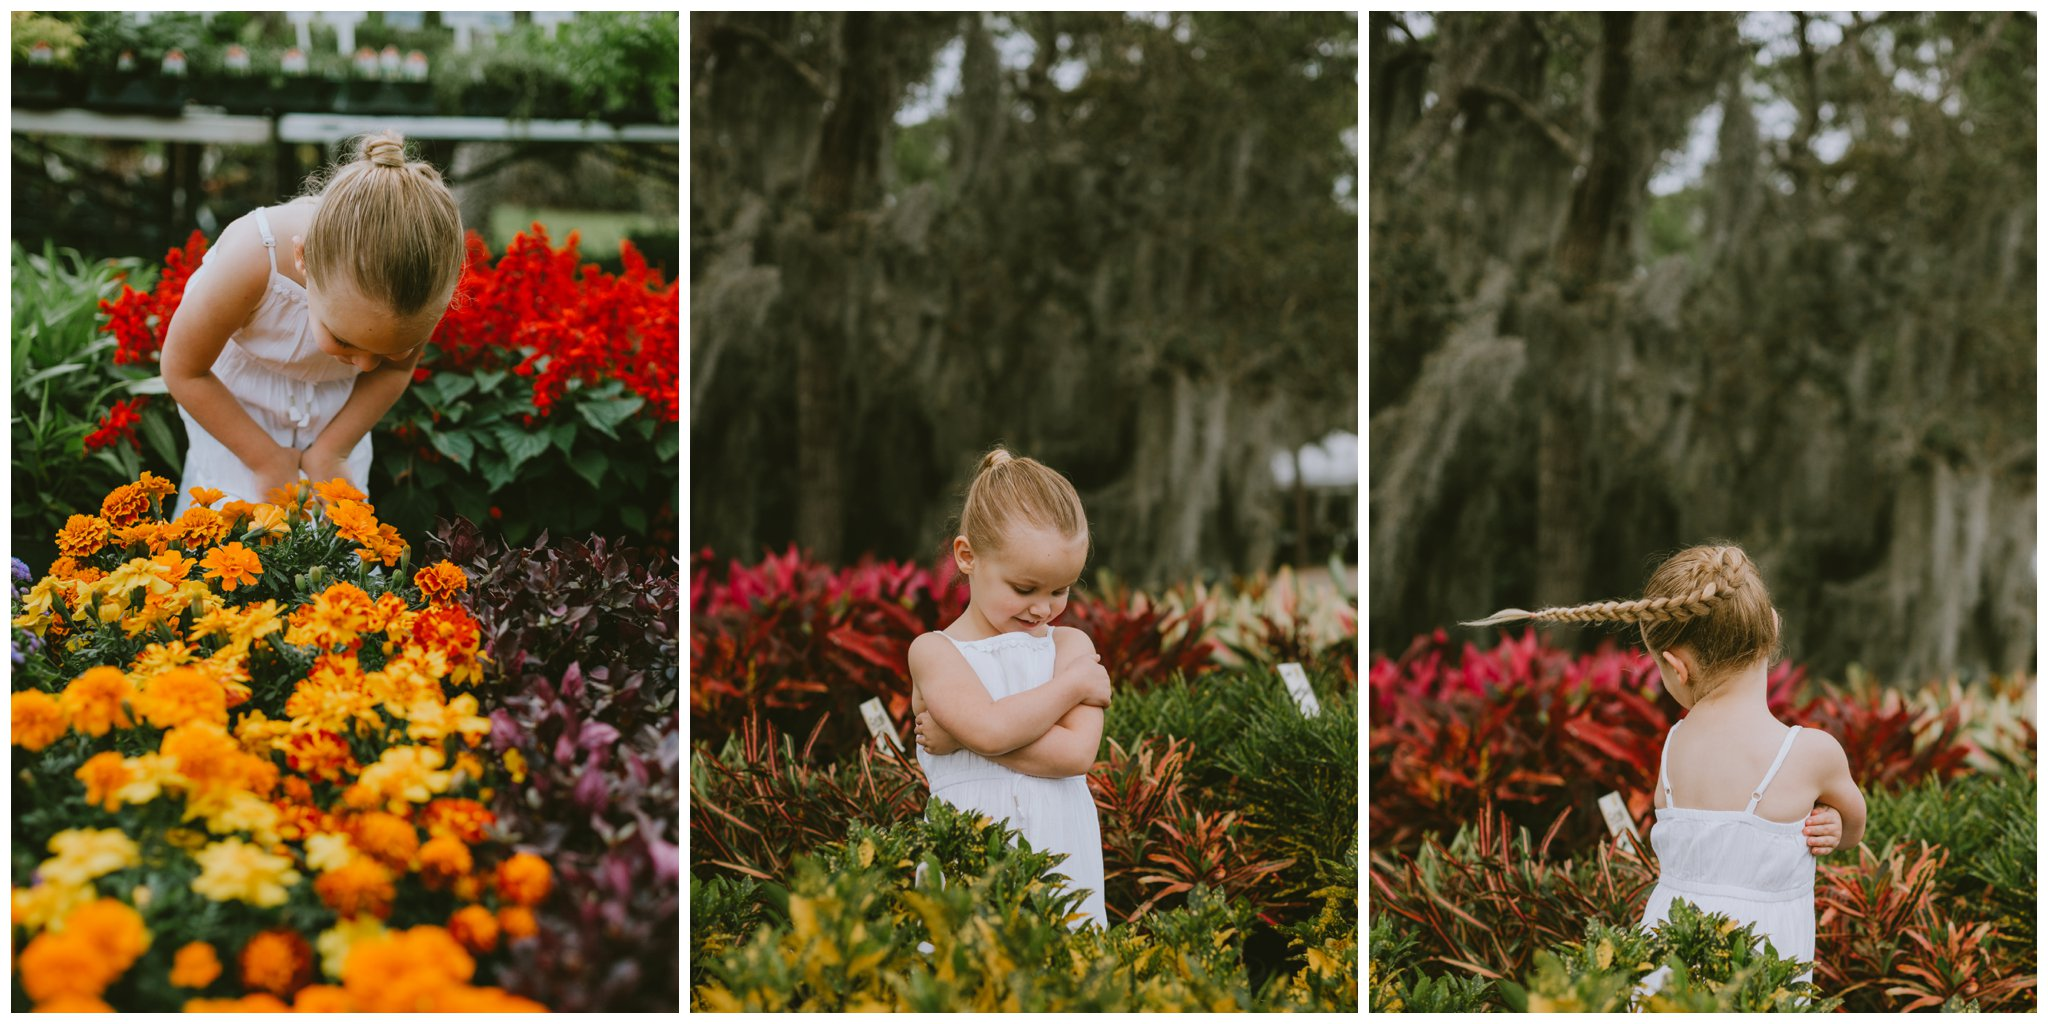 Kimberly Smith Photography| Port St Lucie Botanical Gardens| Maternity Photos| Jupiter Florida Photographer | Stuart Fl photographer_0186.jpg